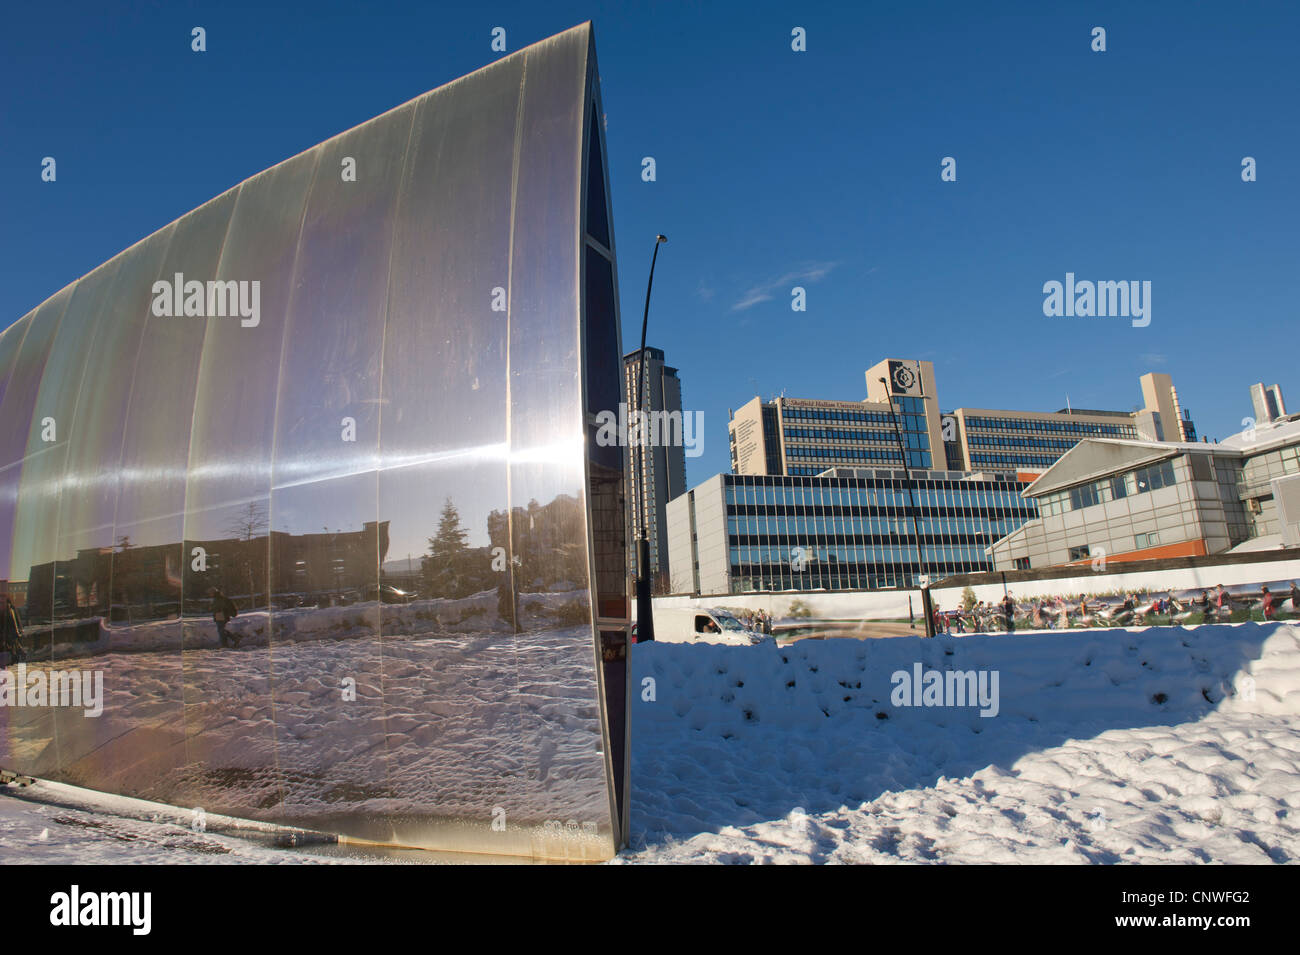 The Blade sculpture, outside Sheffield Railway station, after a snow storm - Stock Image